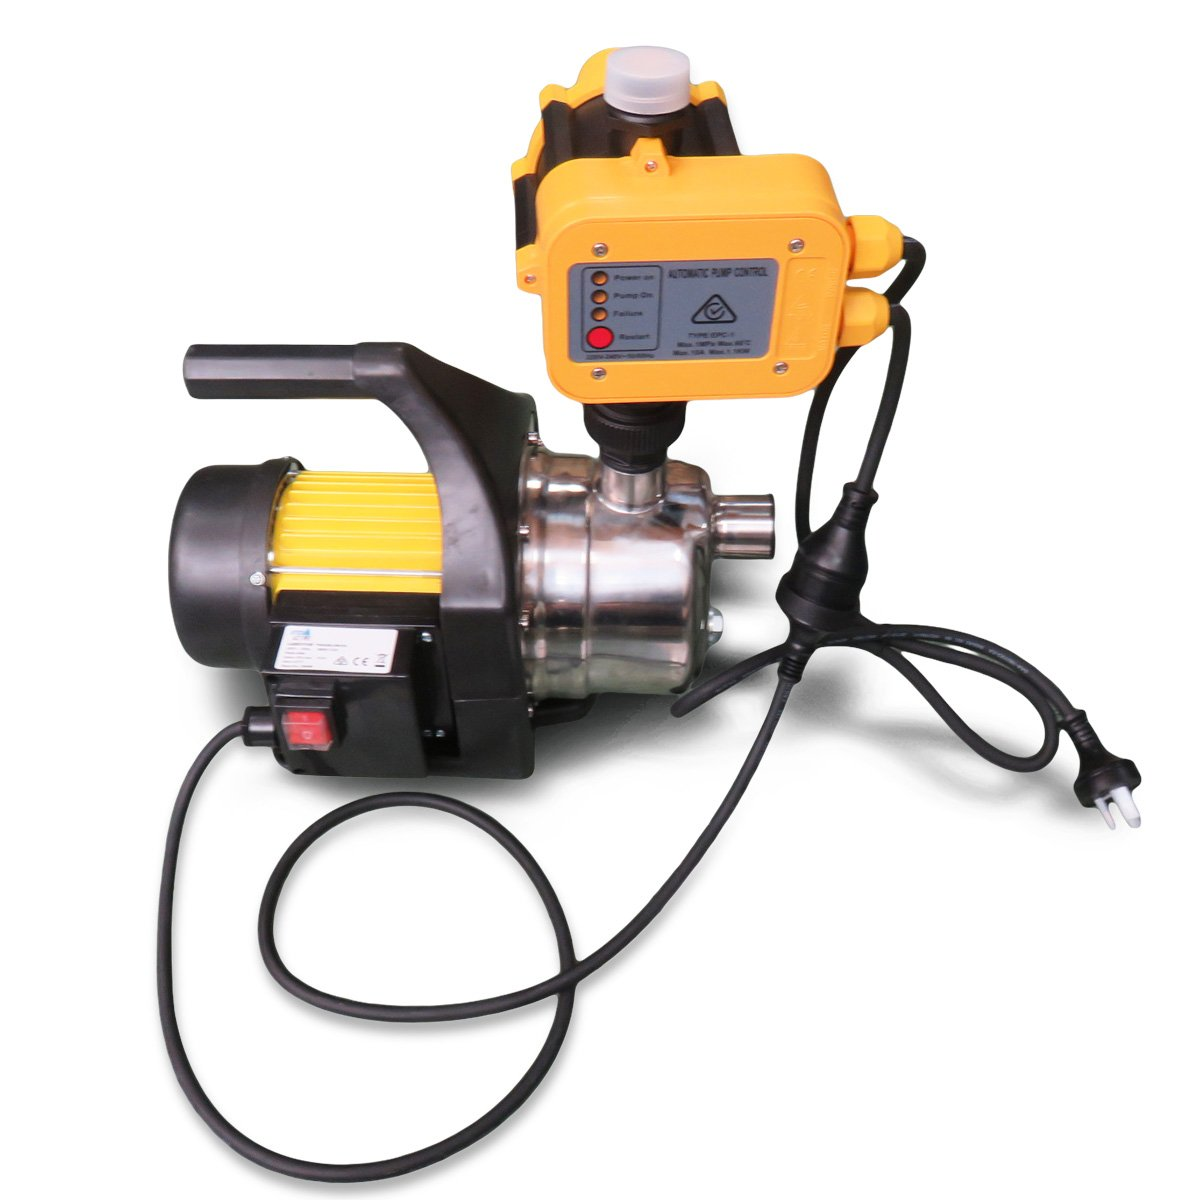 Hydro Active 800w Stainless Auto Water Pump 70B -Yellow - $344.55